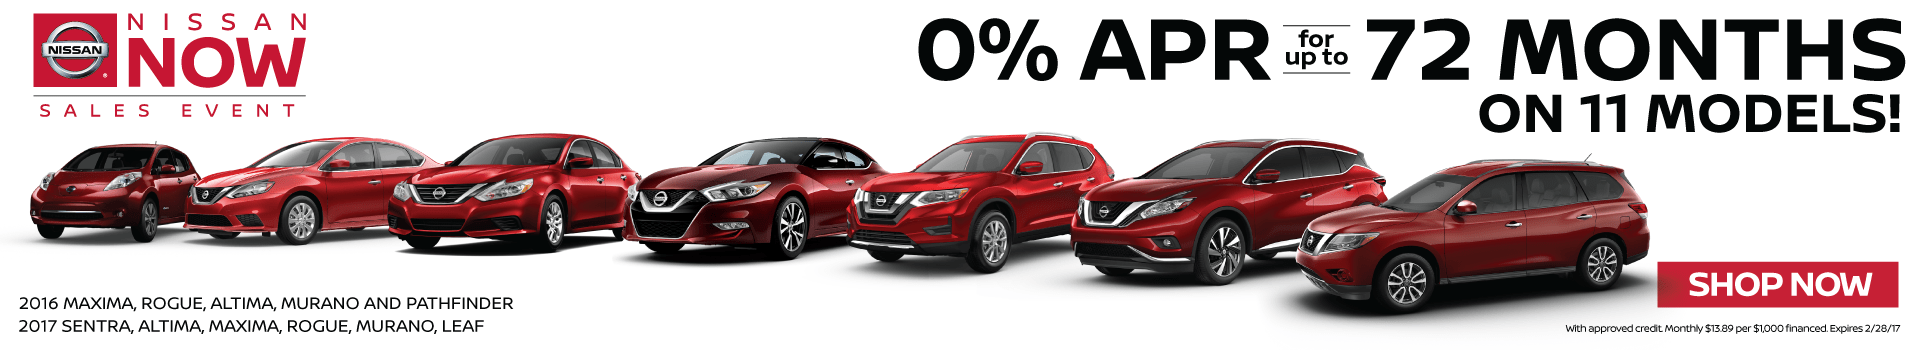 0% APR for 72 Months on 11 models